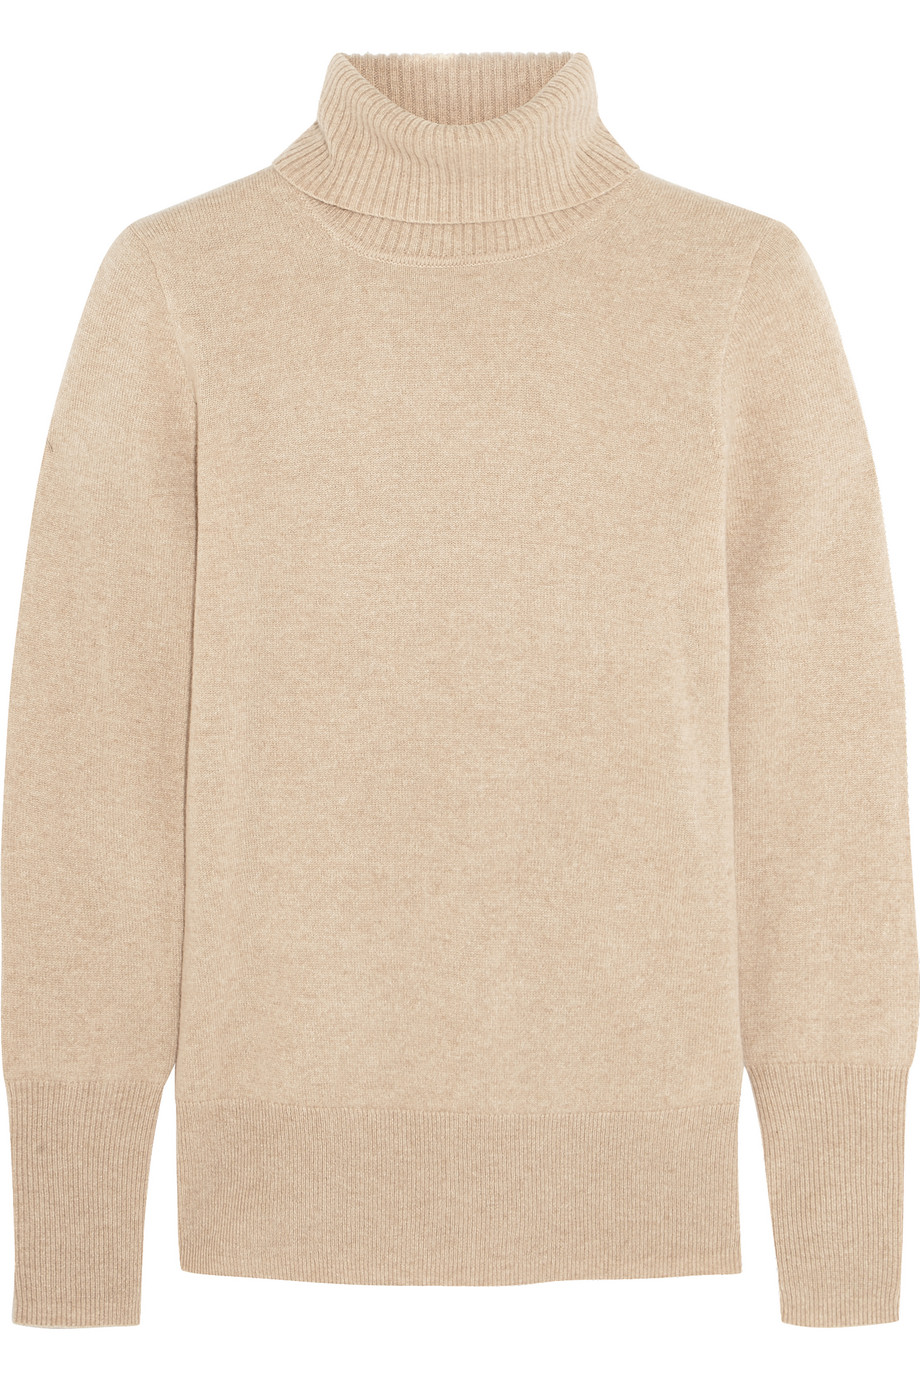 J.Crew Cashmere Turtleneck Sweater, Beige, Women's, Size: L